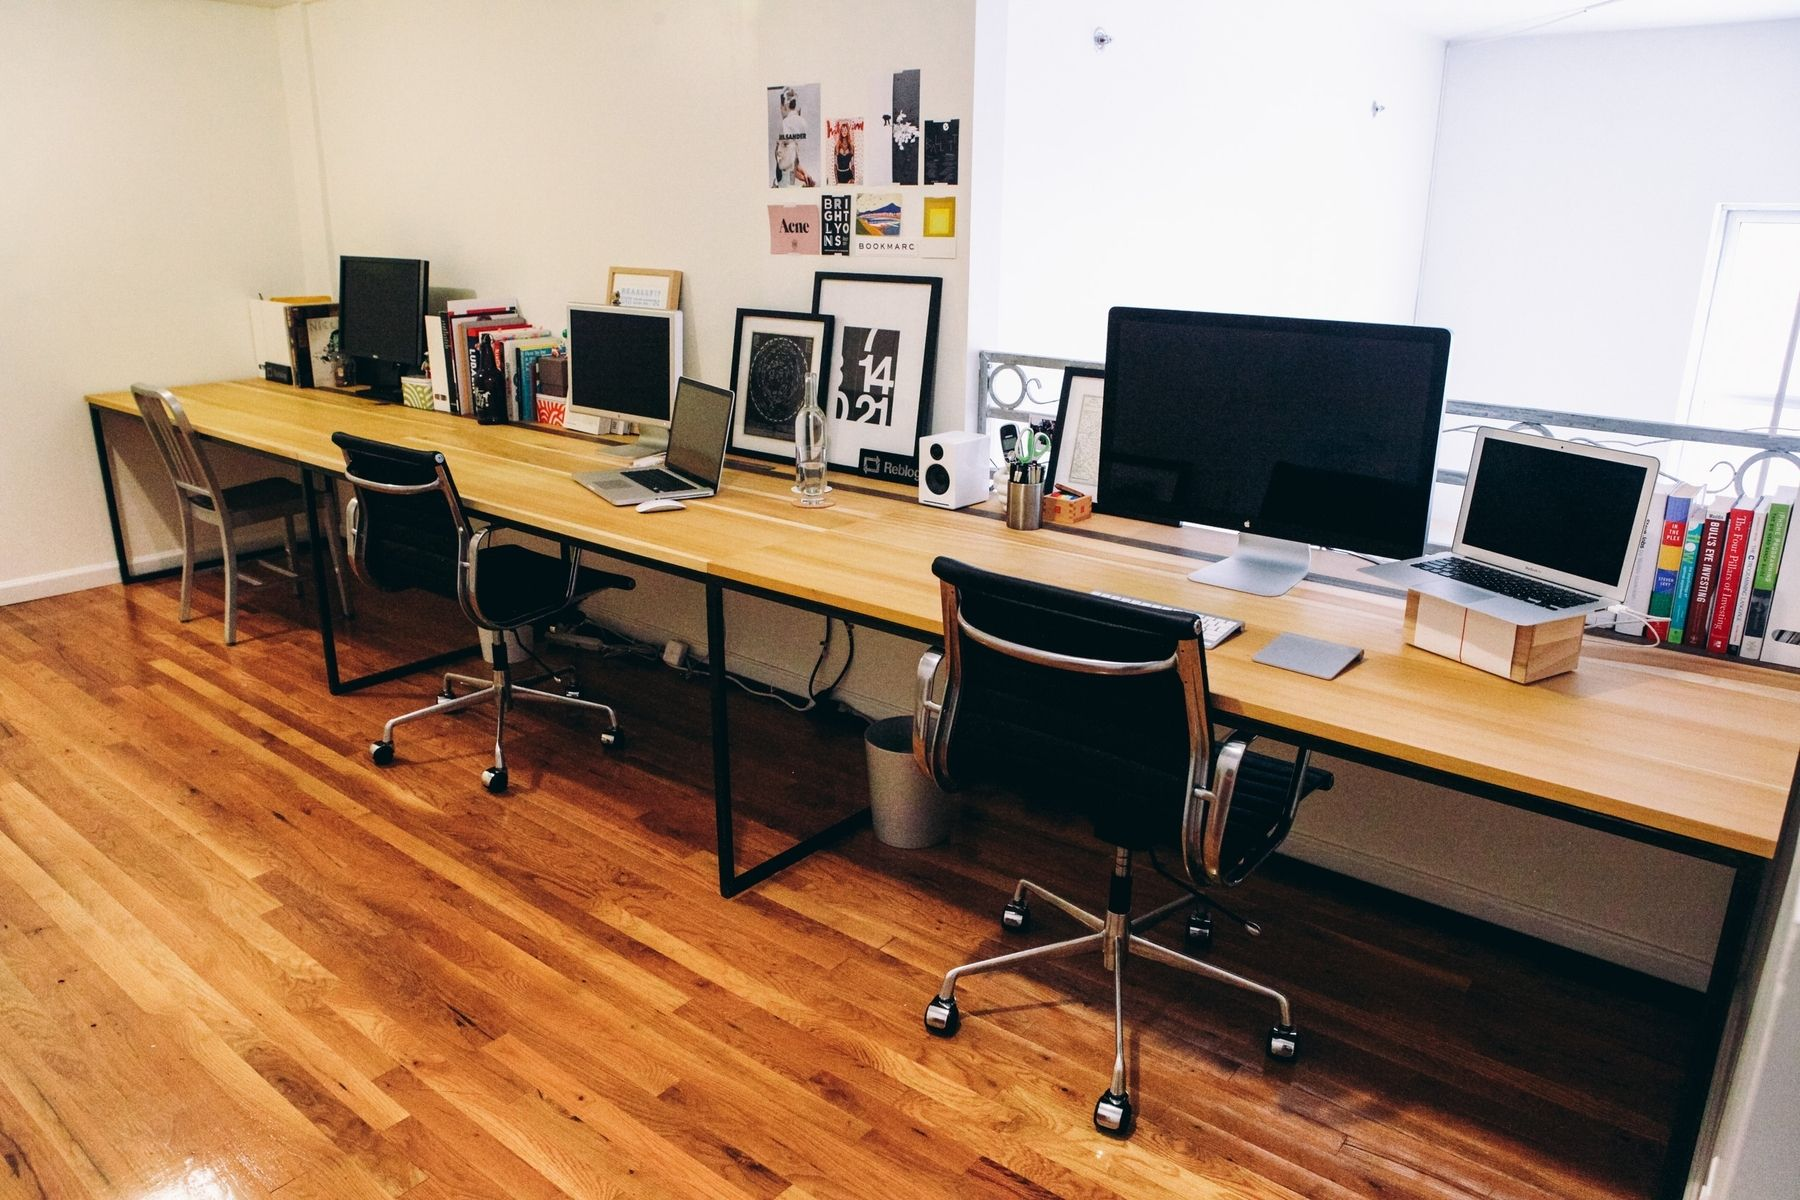 Hand Made Superdesk  17 Poplar Desk With Custom Iron Design by Left To Right Furniture